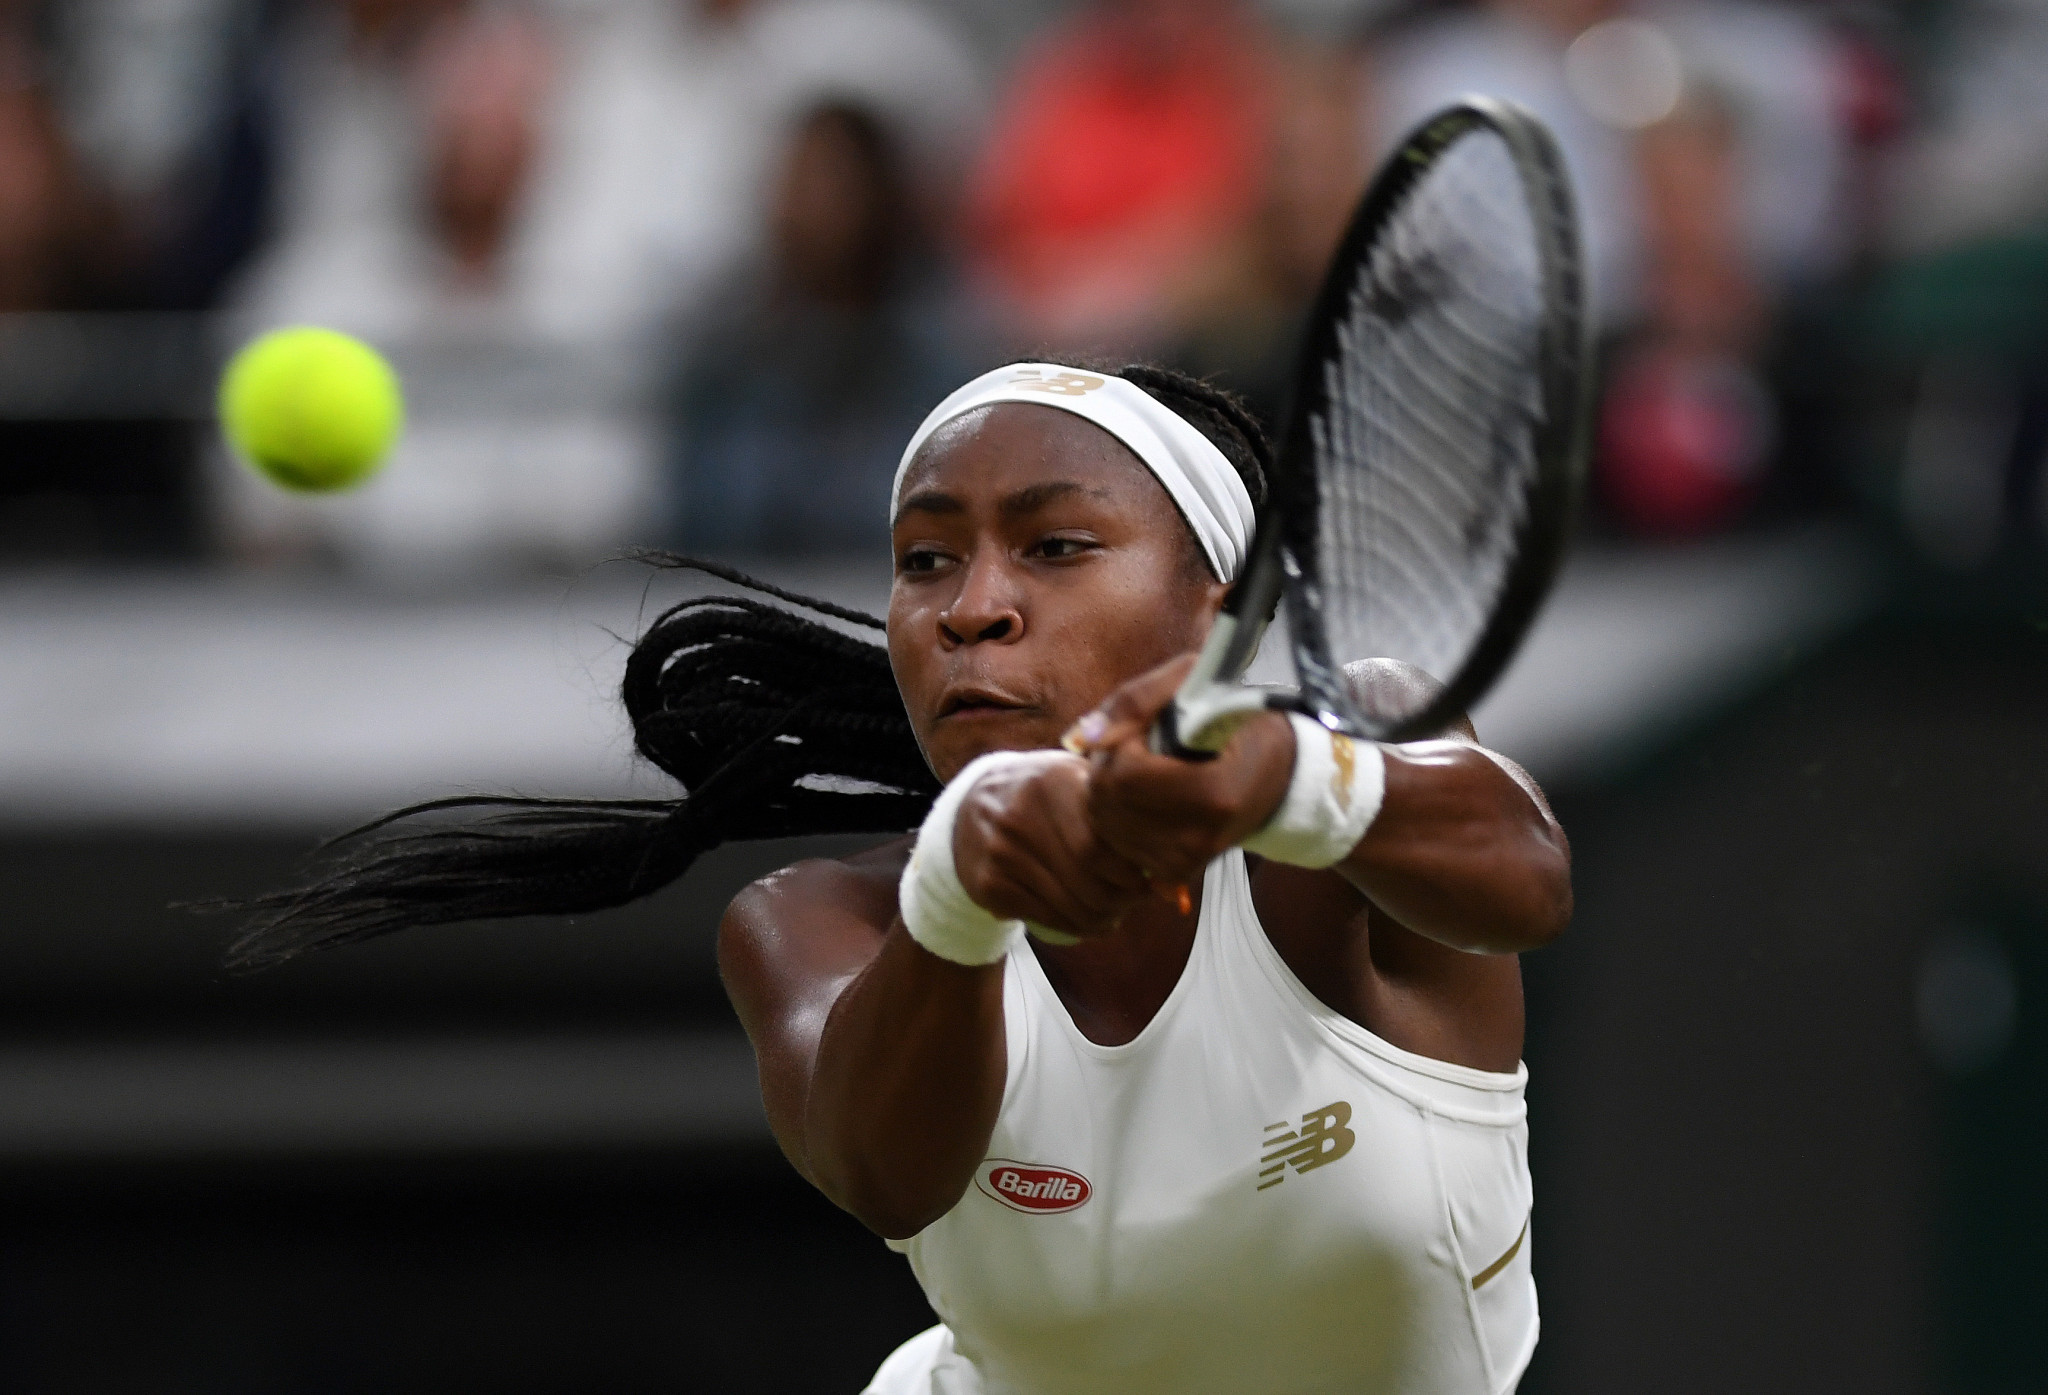 American youngster Coco Gauff continued her winning run at Wimbledon ©Getty Images